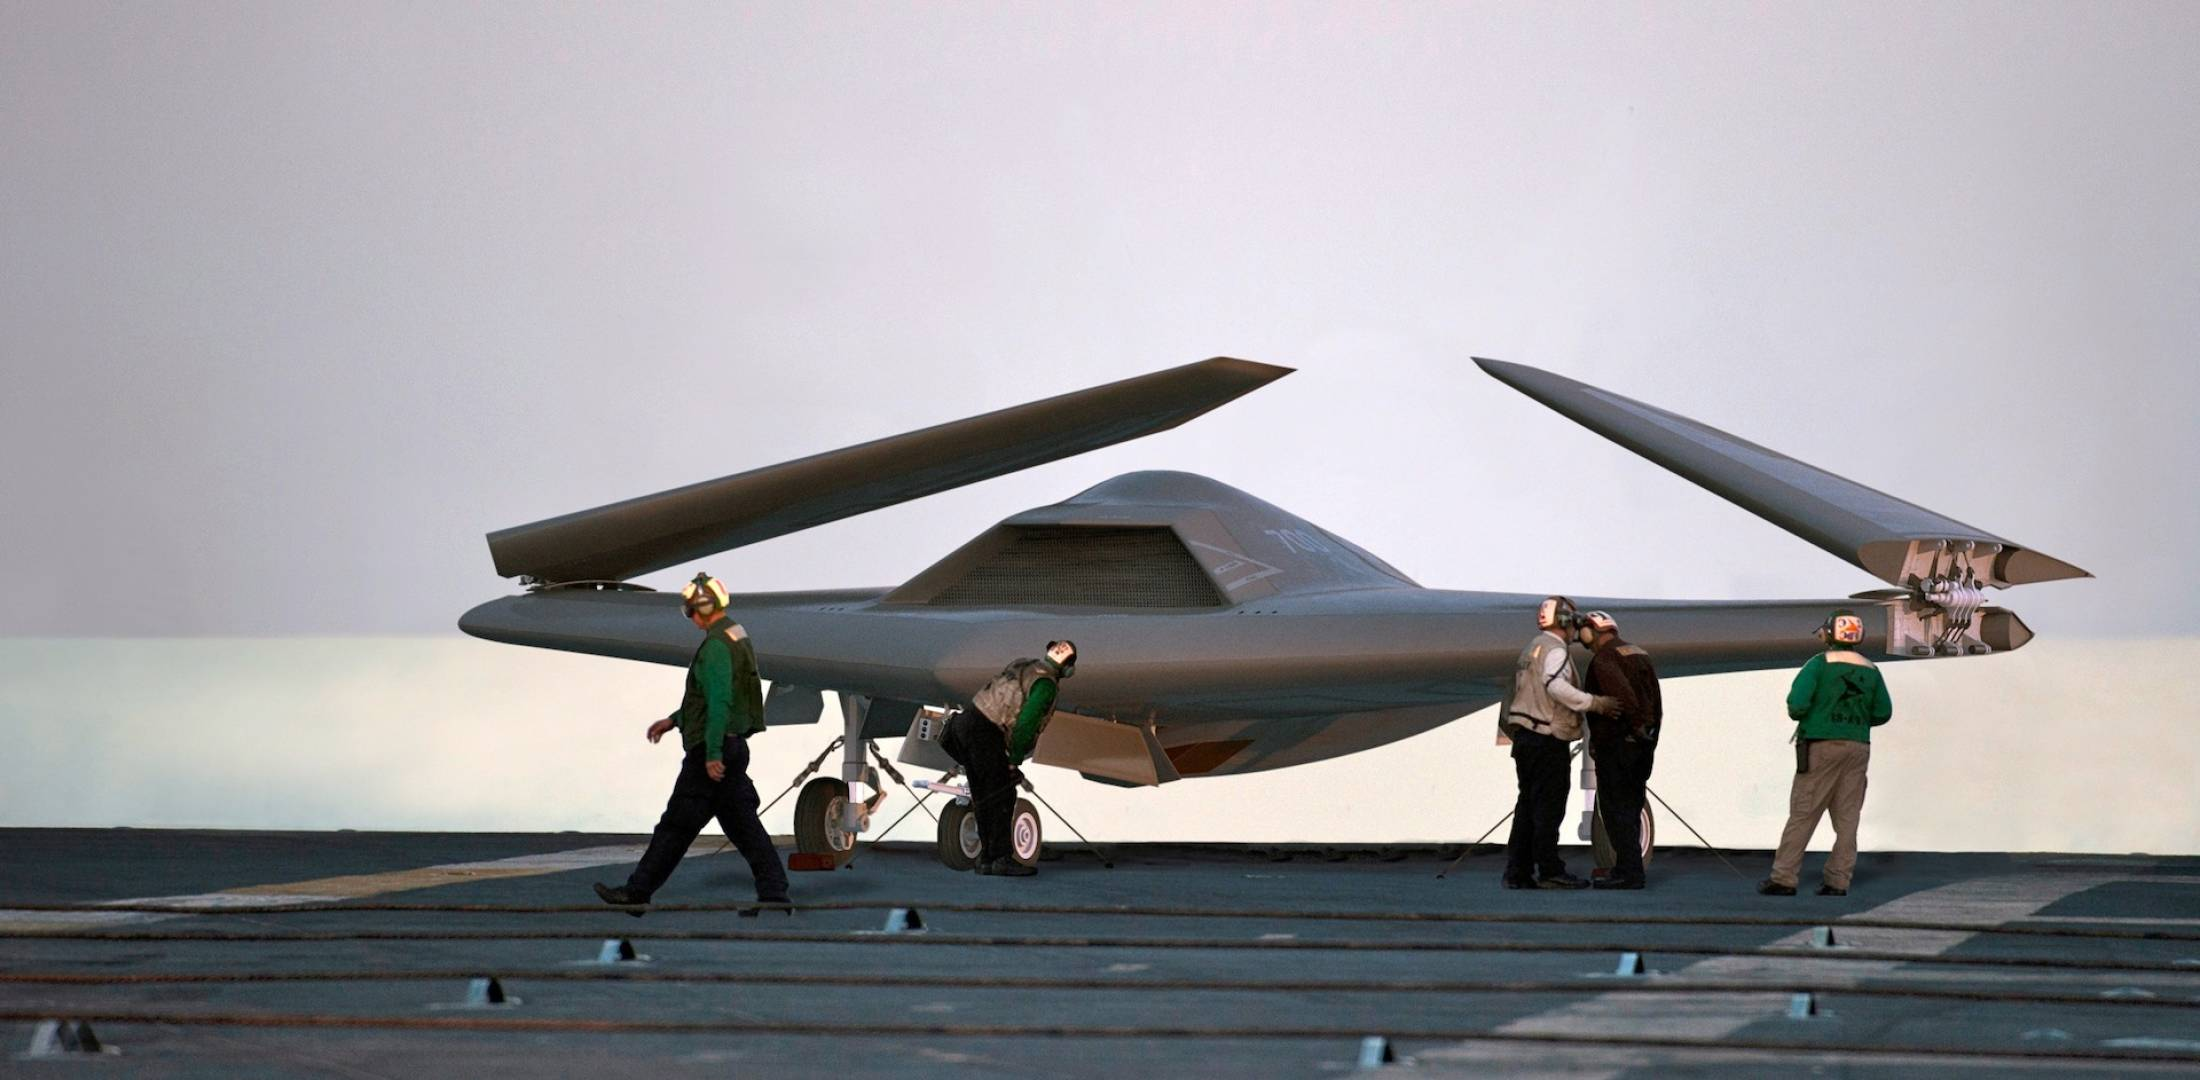 U S  Navy Readies Requirements for Unmanned MQ-25 Stingray